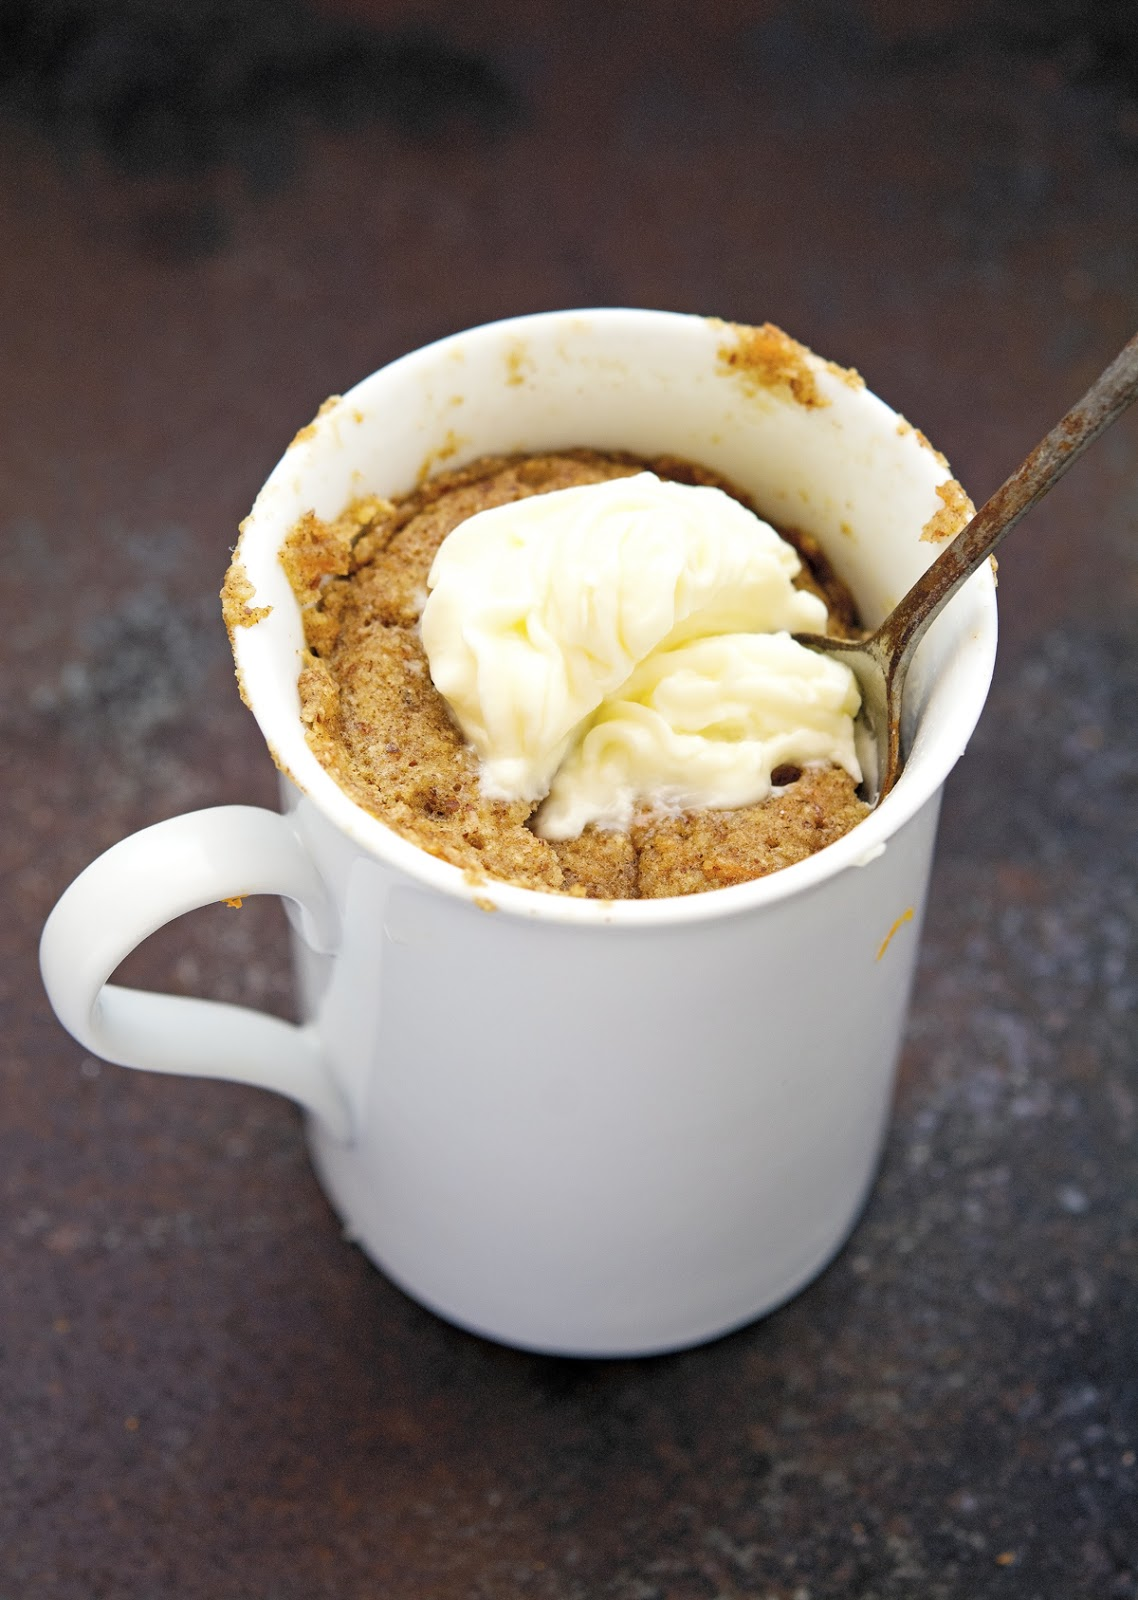 (Paleo) Carrot Cake In A Mug